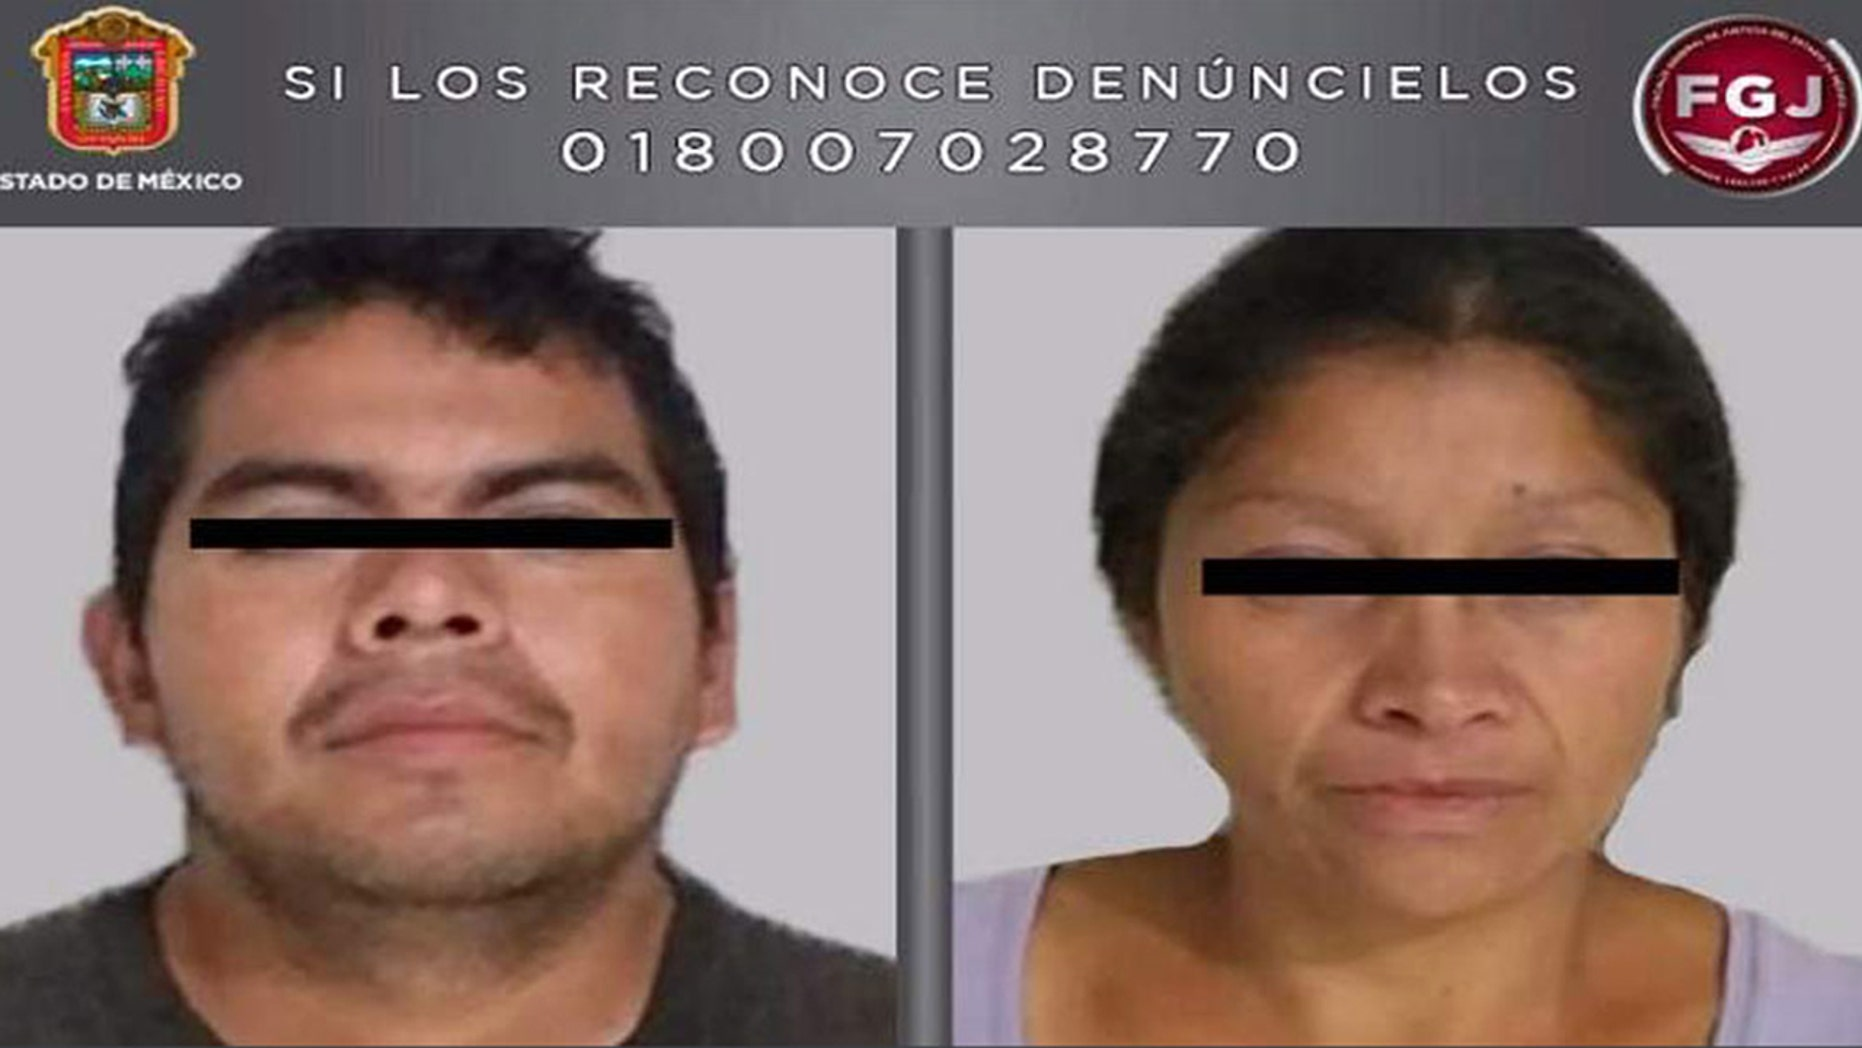 A man and woman - identified only as Juan Carlos and Patricia - were arrested for allegedly killing and dismembering as many as 20 women in Mexico.